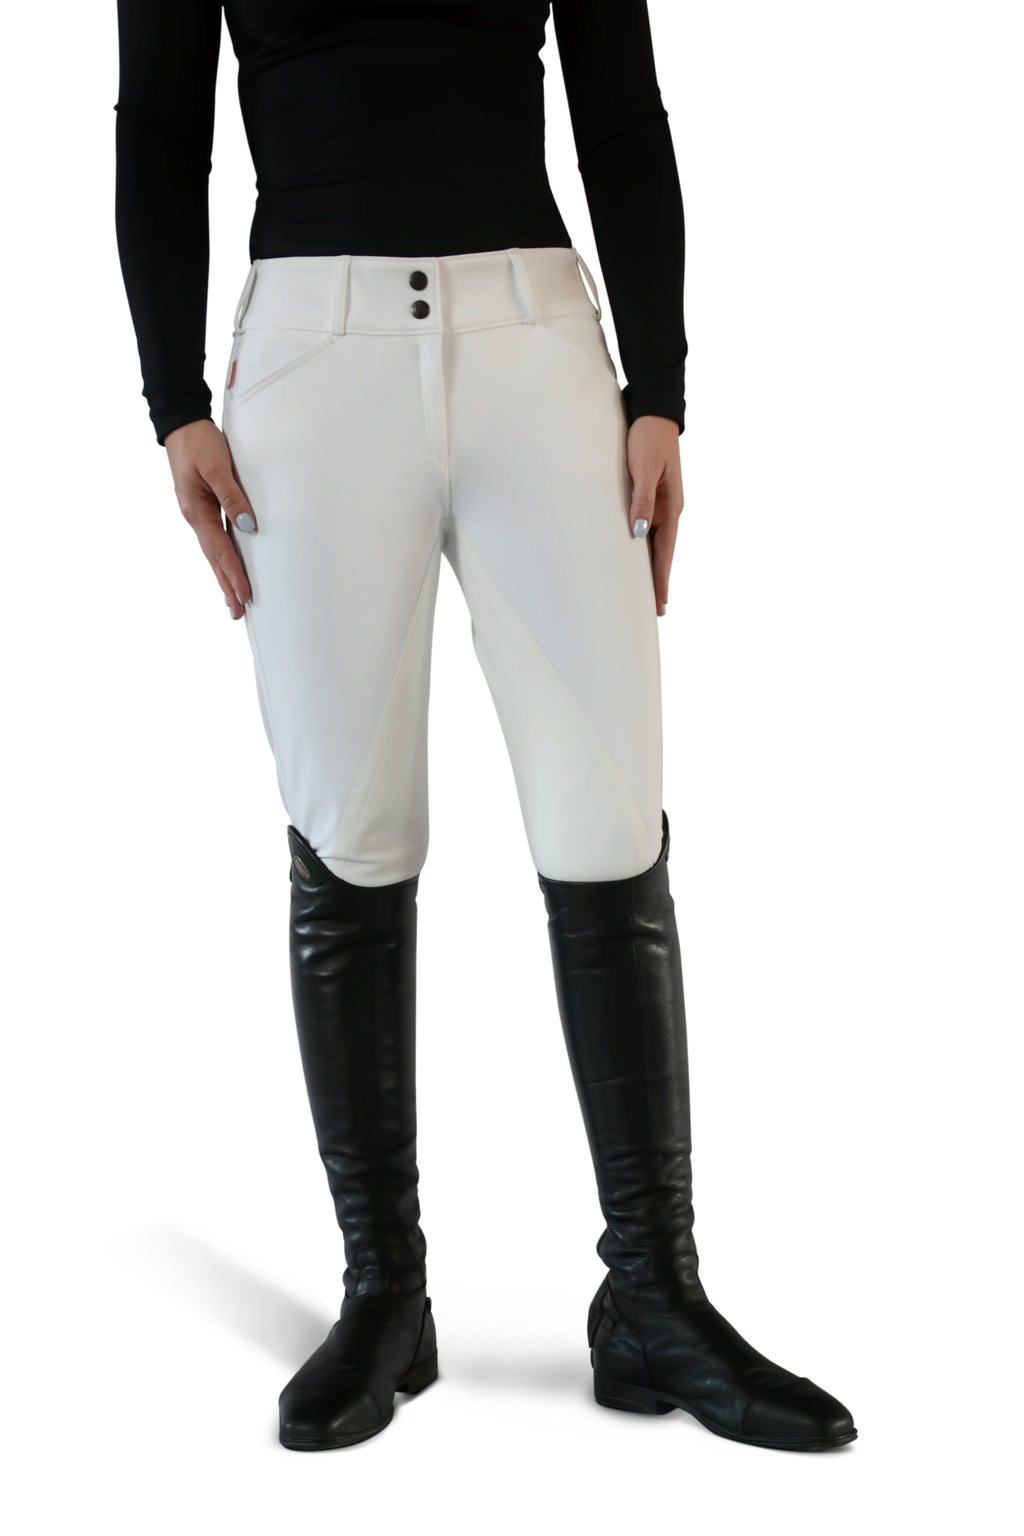 Tailored Sportsman Ladies' Full Seat Breech- Low Rise Front Zip